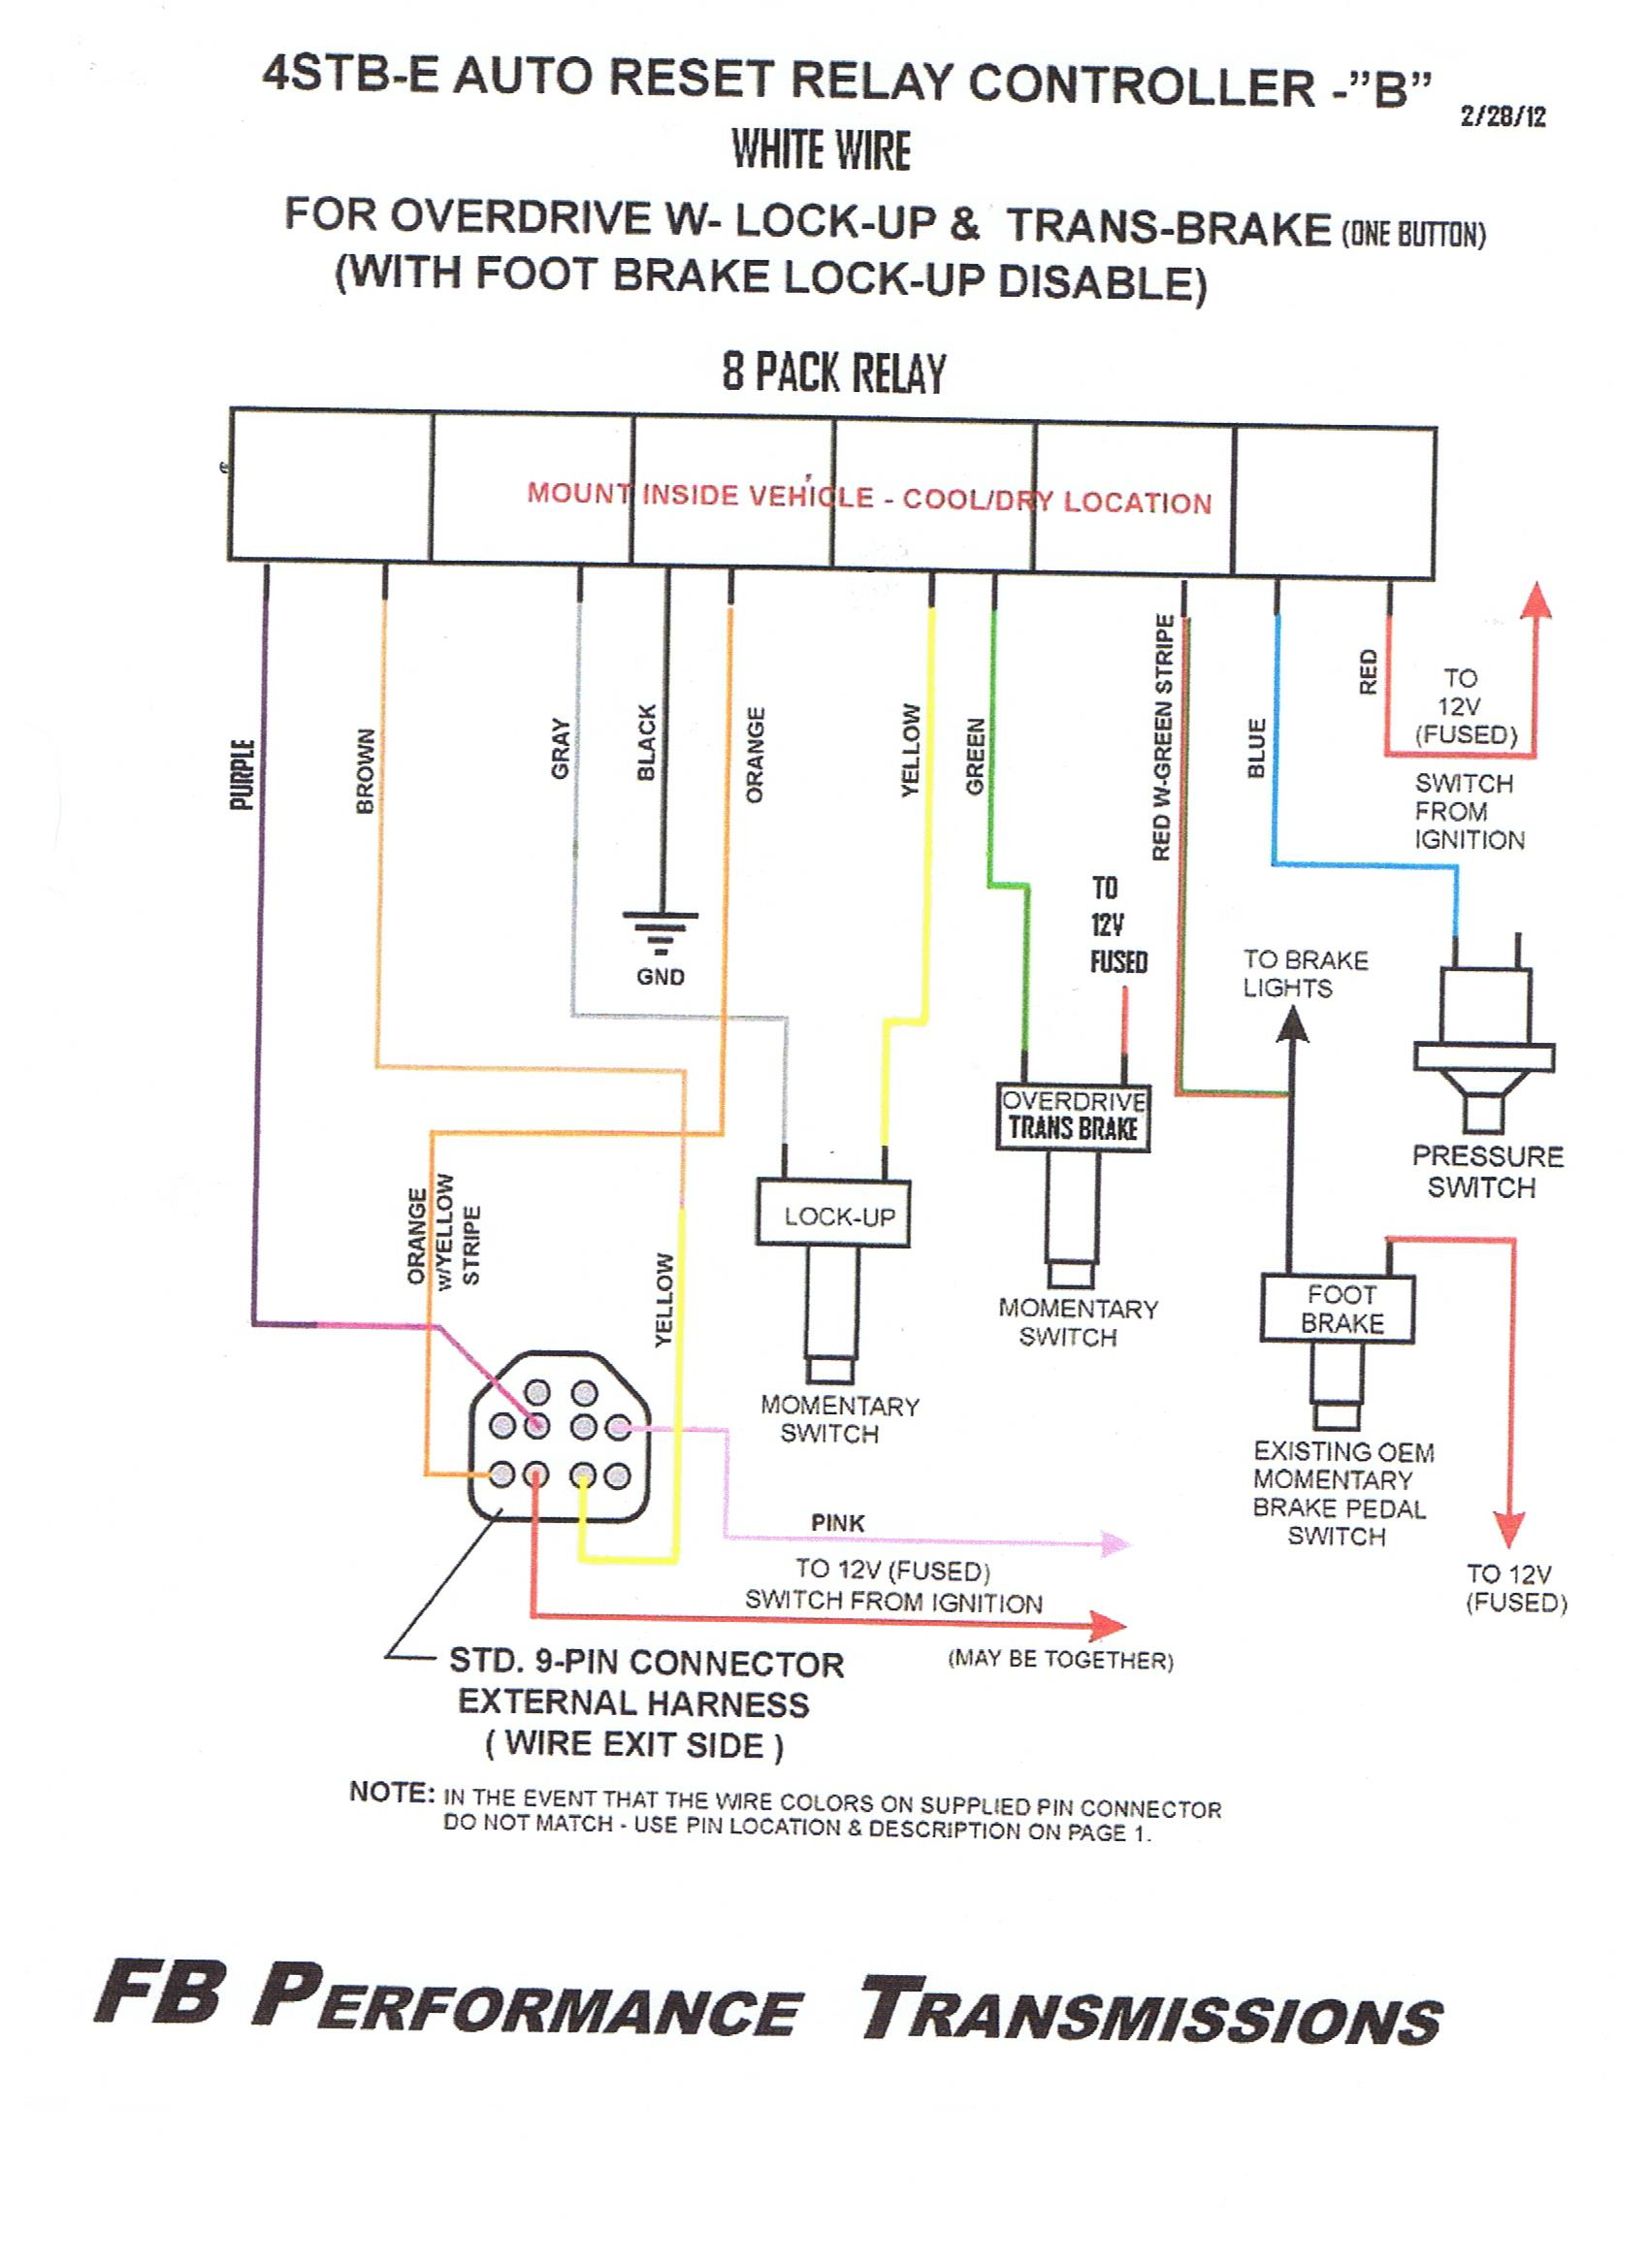 hydraulic wiring diagram wiring diagram data rh 15 8 3 reisen fuer meister de